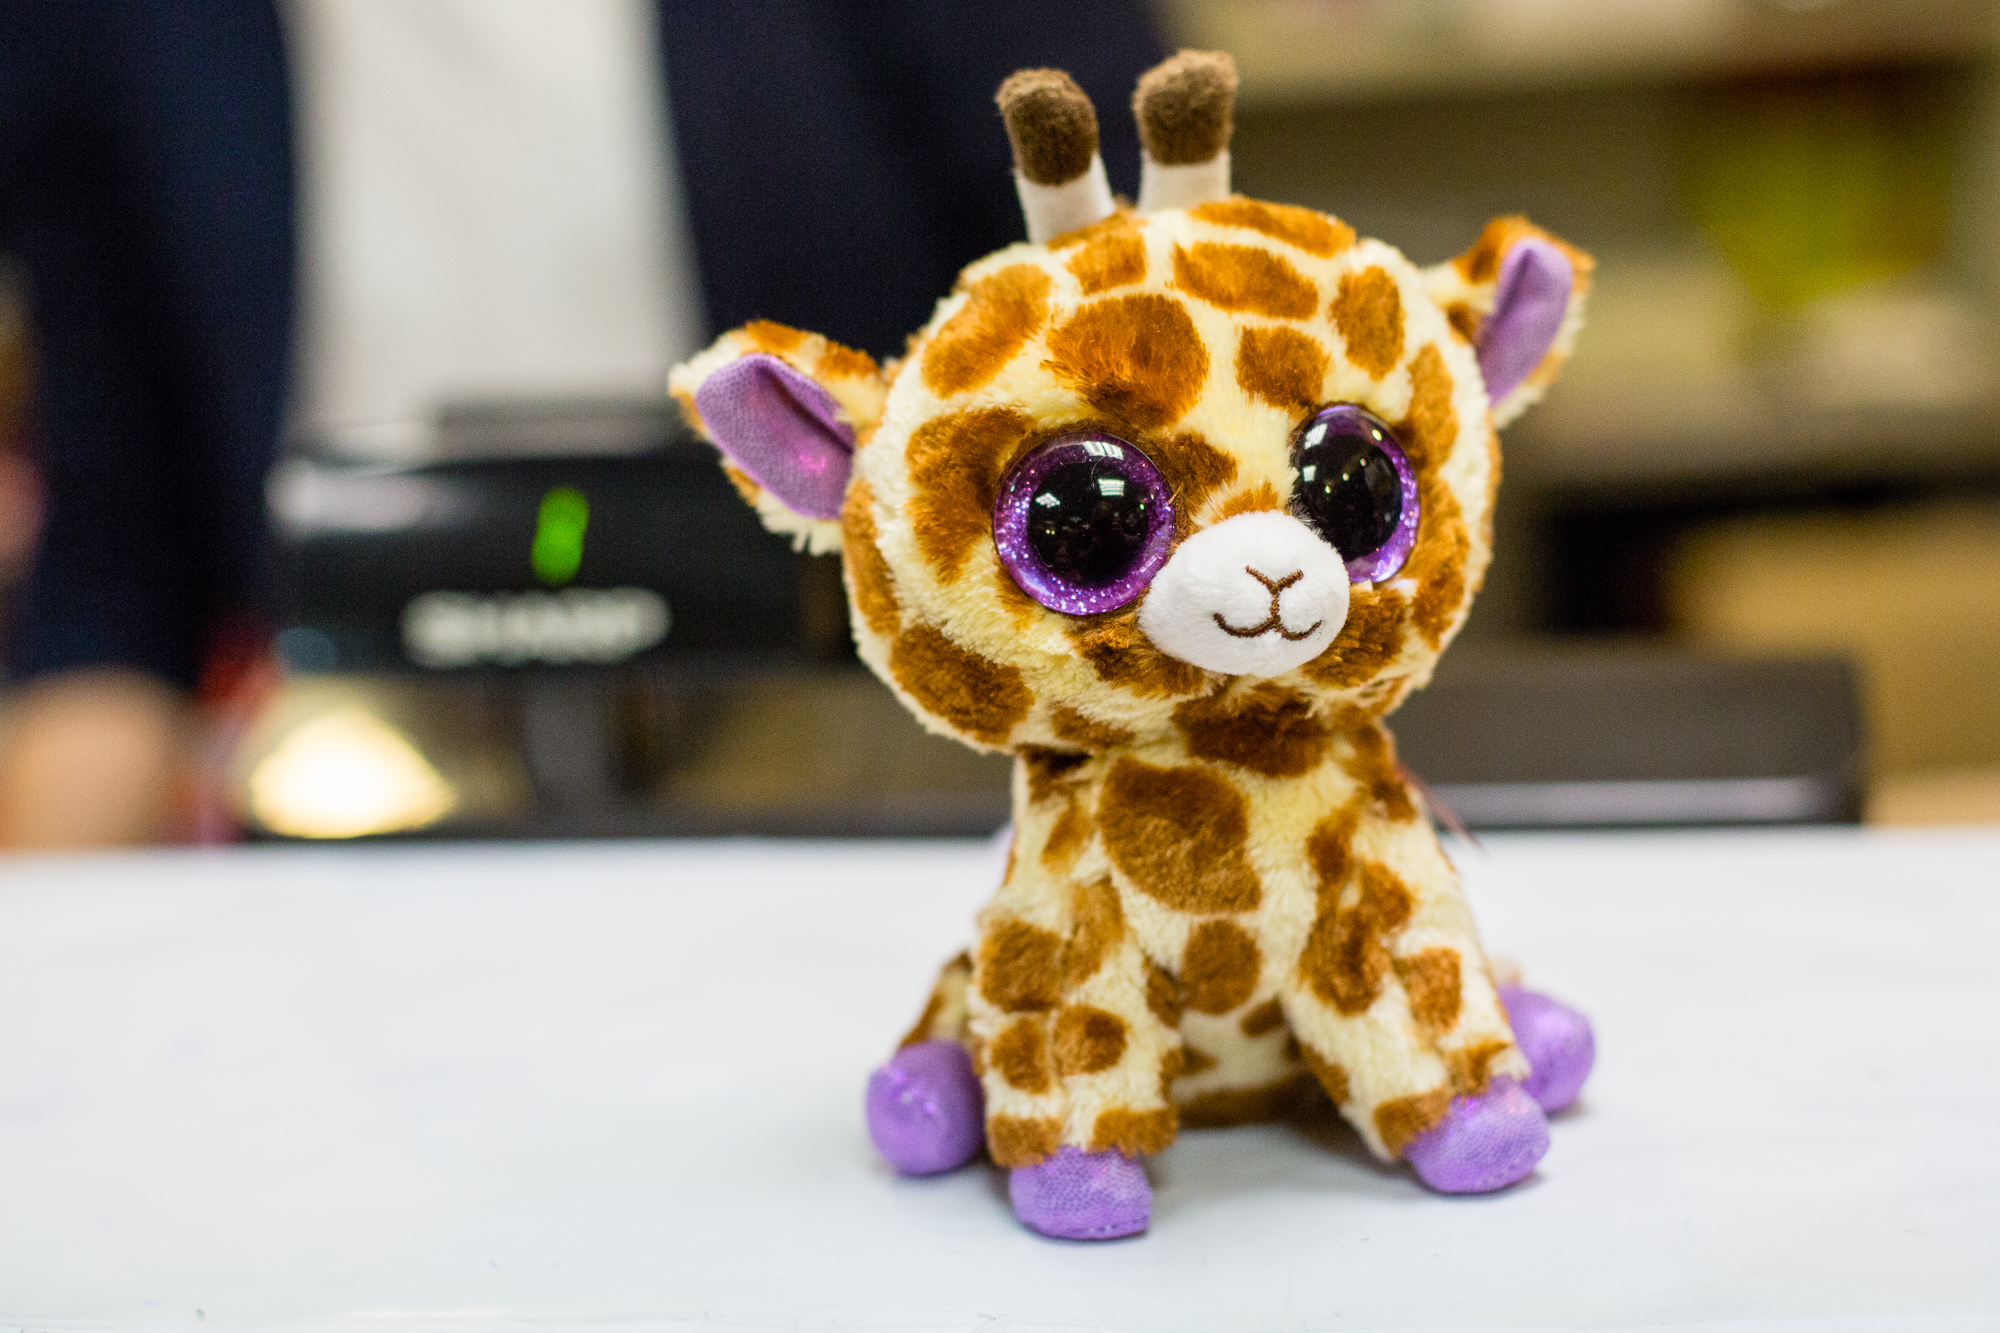 Immediately upon arriving, we found a store that sold Beanie Boos. We liberated this little beast from his life of captivity in Penn Station.